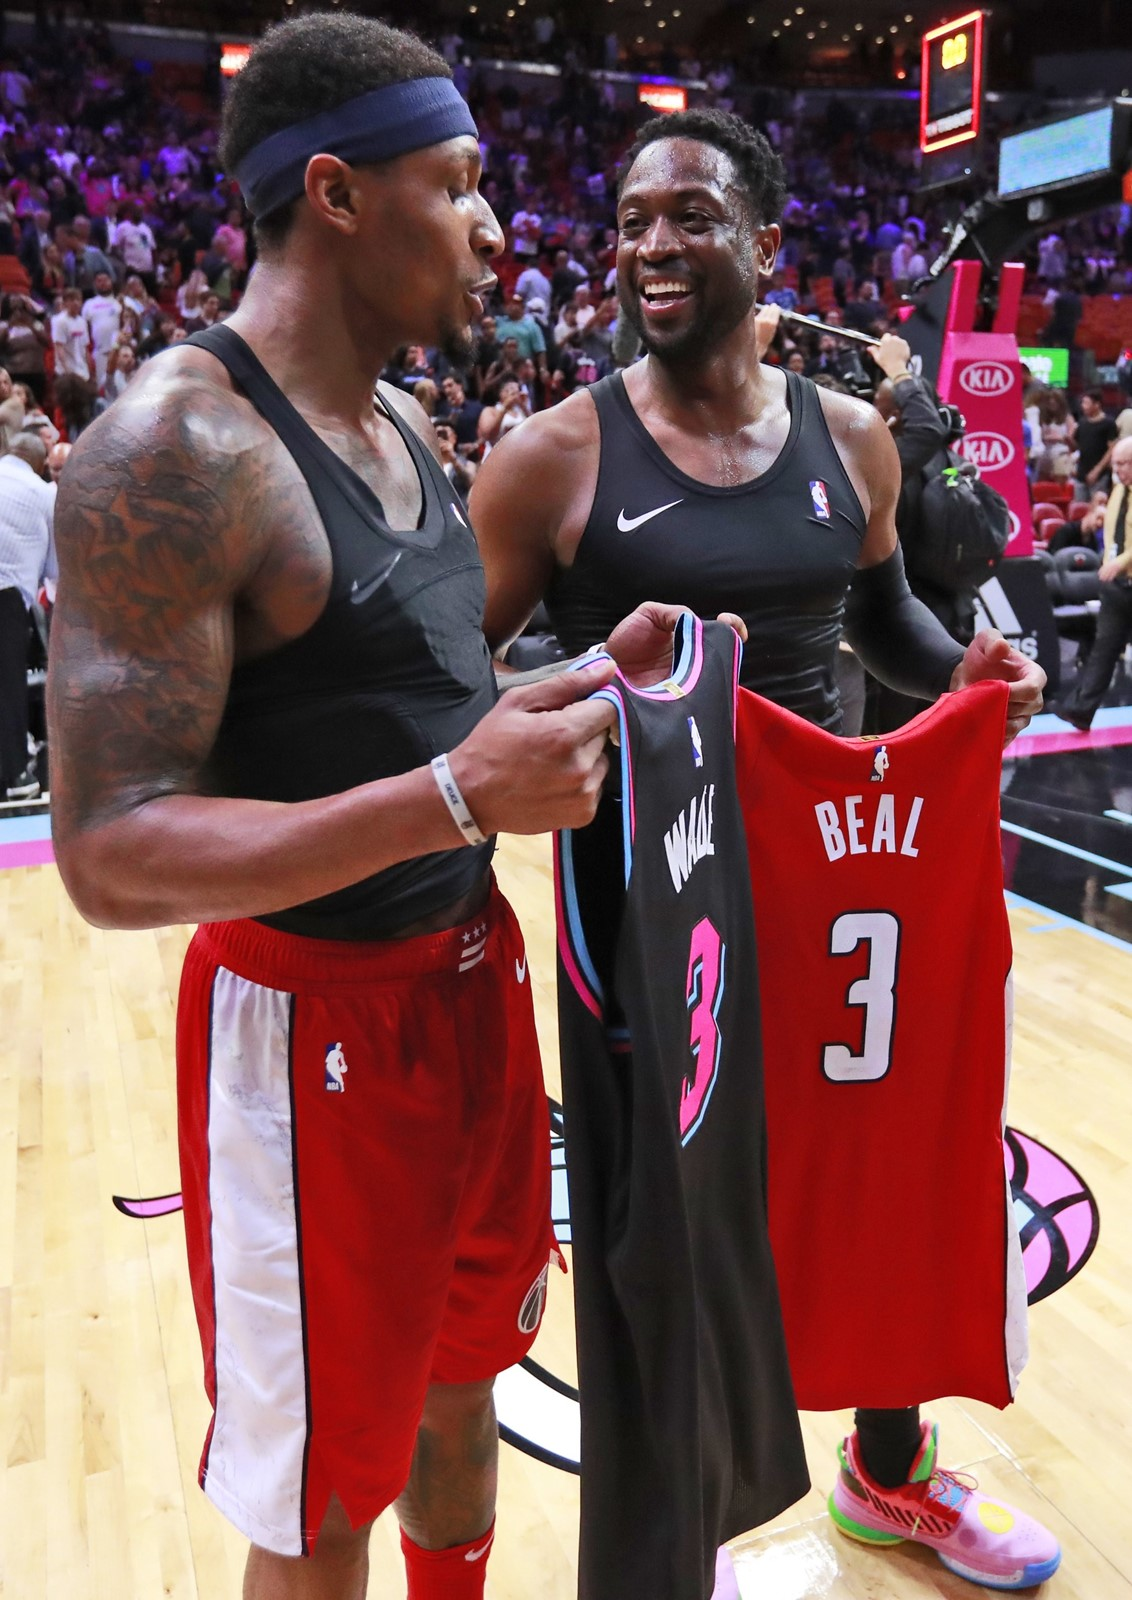 reputable site 9d8ac ac152 Beal settles for jersey after loss - Baltimore Sun